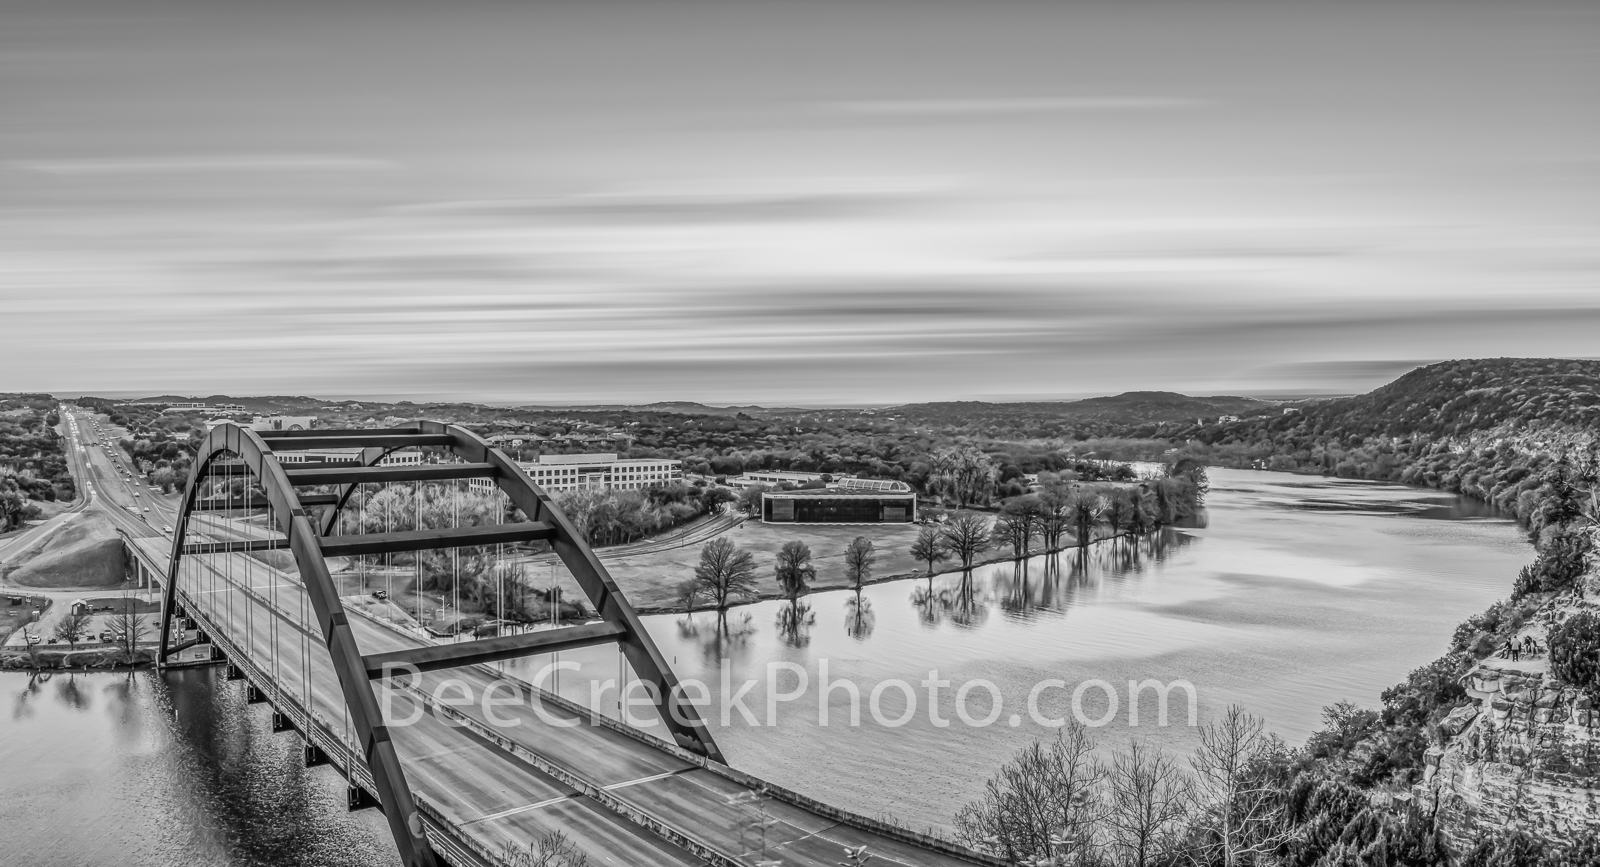 Austin, Austin 360 bridge, pennybacker bridge, black and white, bw, Texas, Lake Austin, scenic, sunset, landscape, landscapes, sunset scenery, clouds, images of texas, texas hill country, texas scener, photo